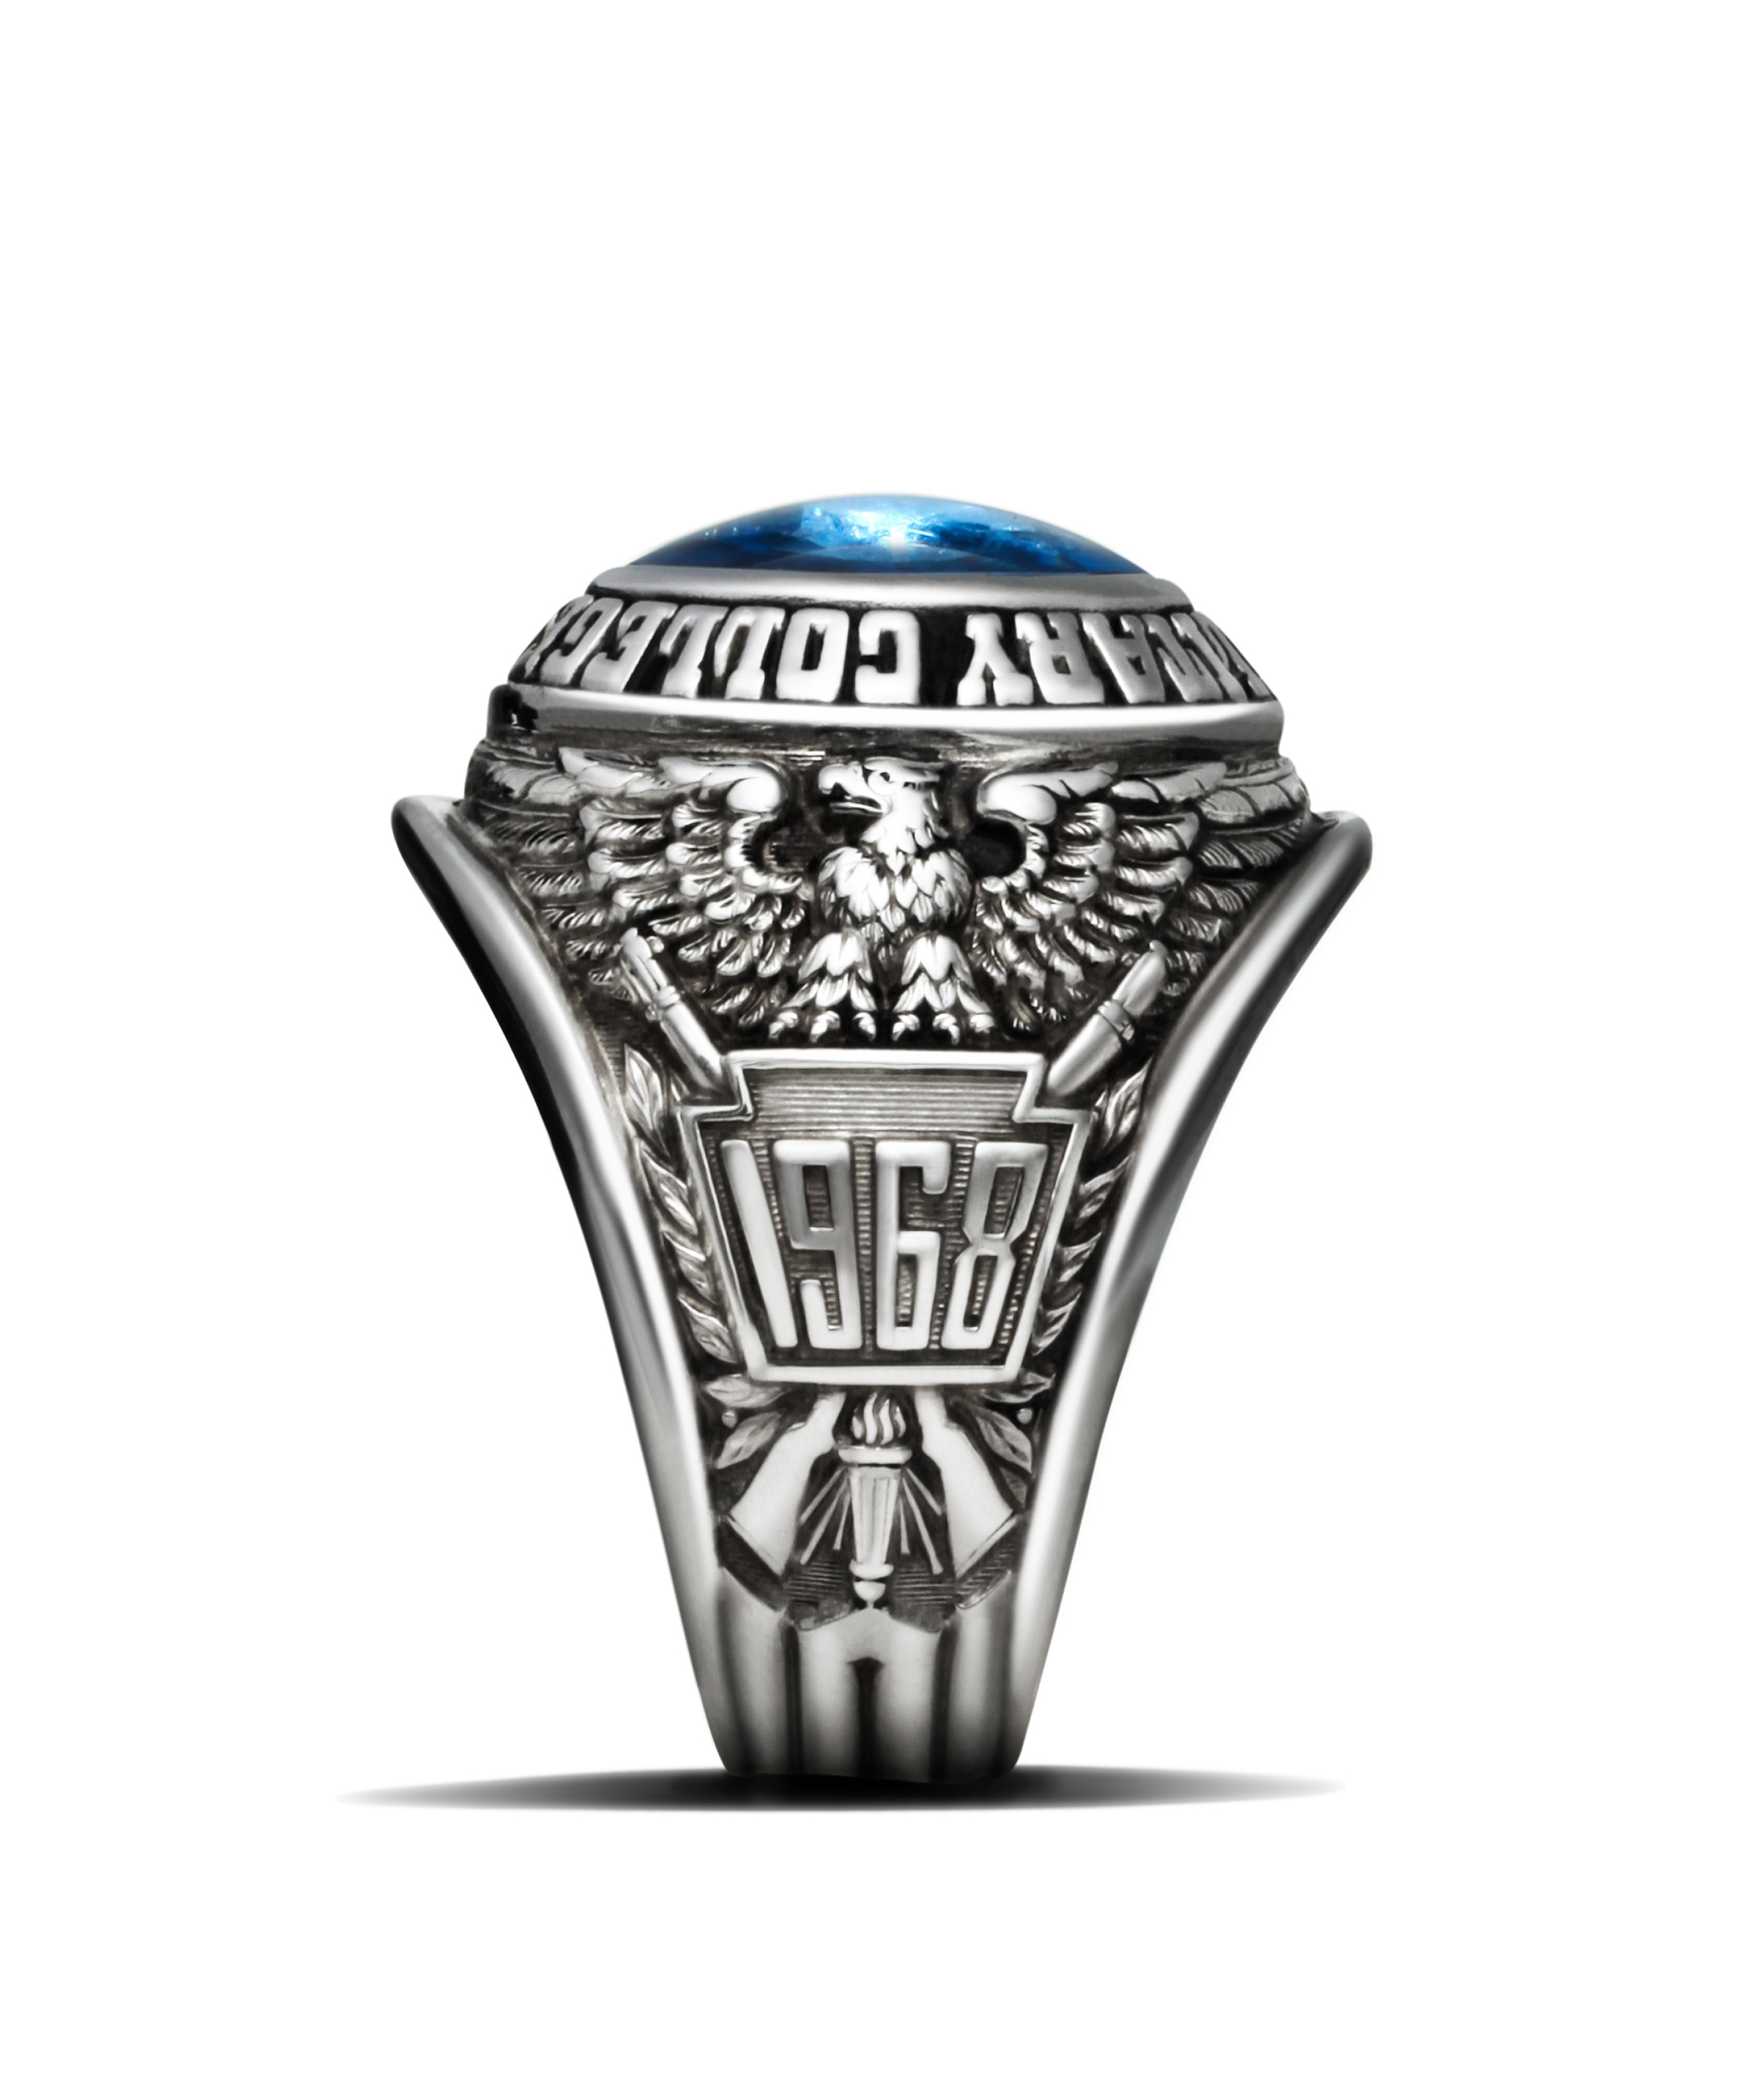 copy ringwraps aggie m a am prairieview logocustom work custom rings college